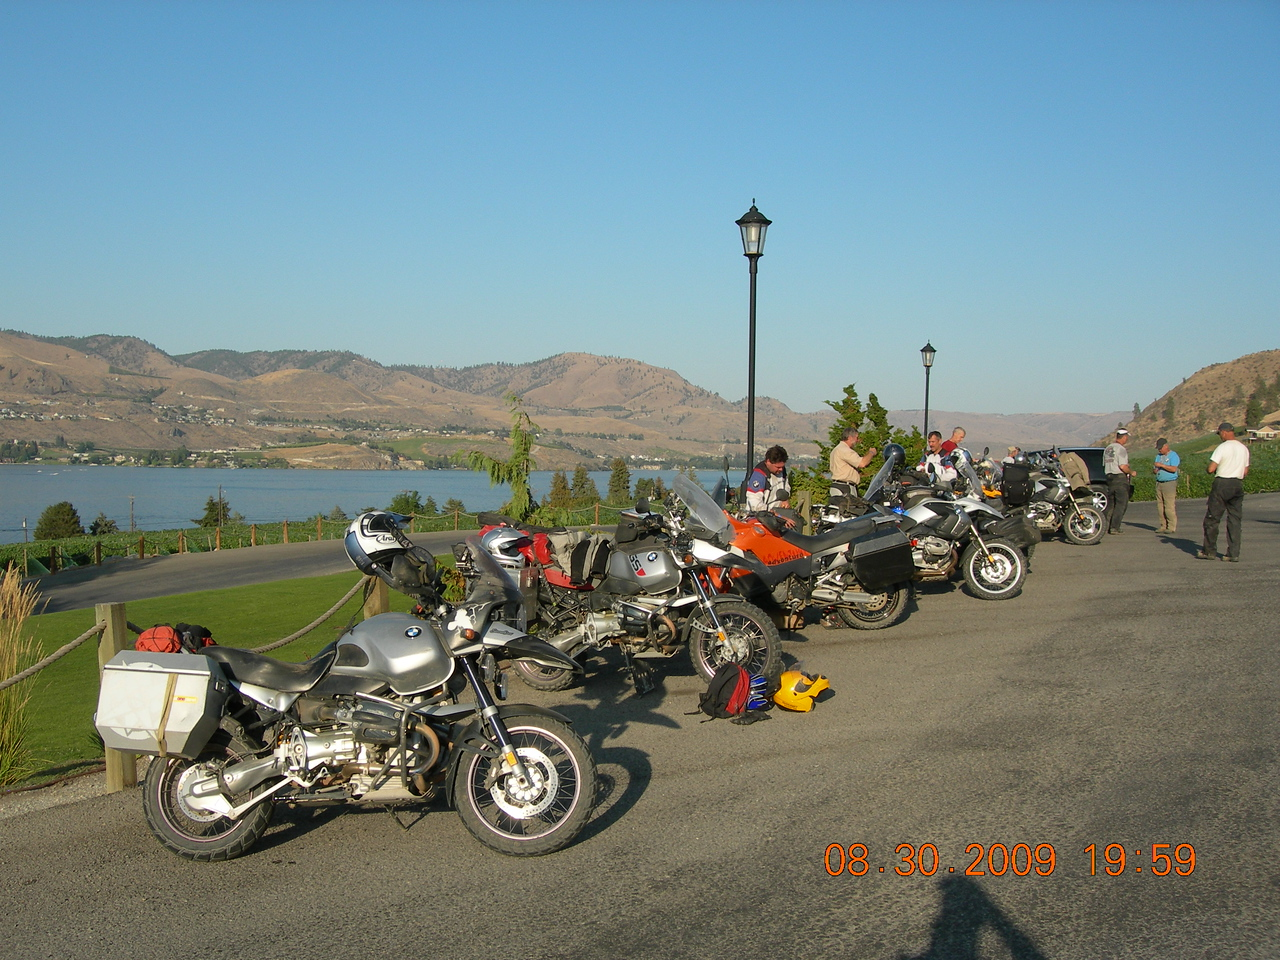 Meeting up at the Tsillan Cellars in Lake Chelan for a group photo and ticket raffle with prizes donated by Ride West BMW in Seattle.